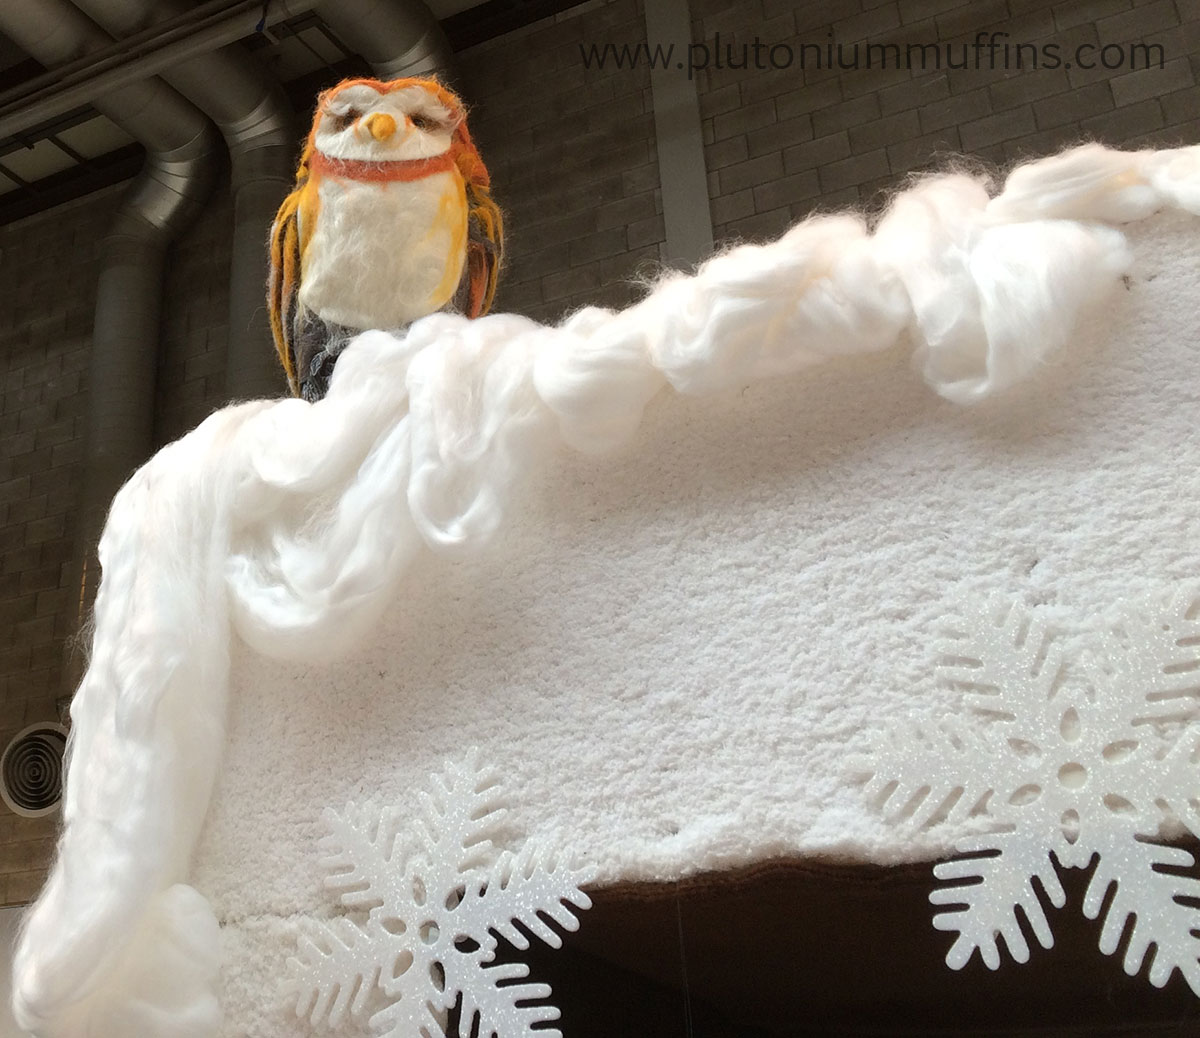 A cheeky little felted owl on top of the wardrobe.